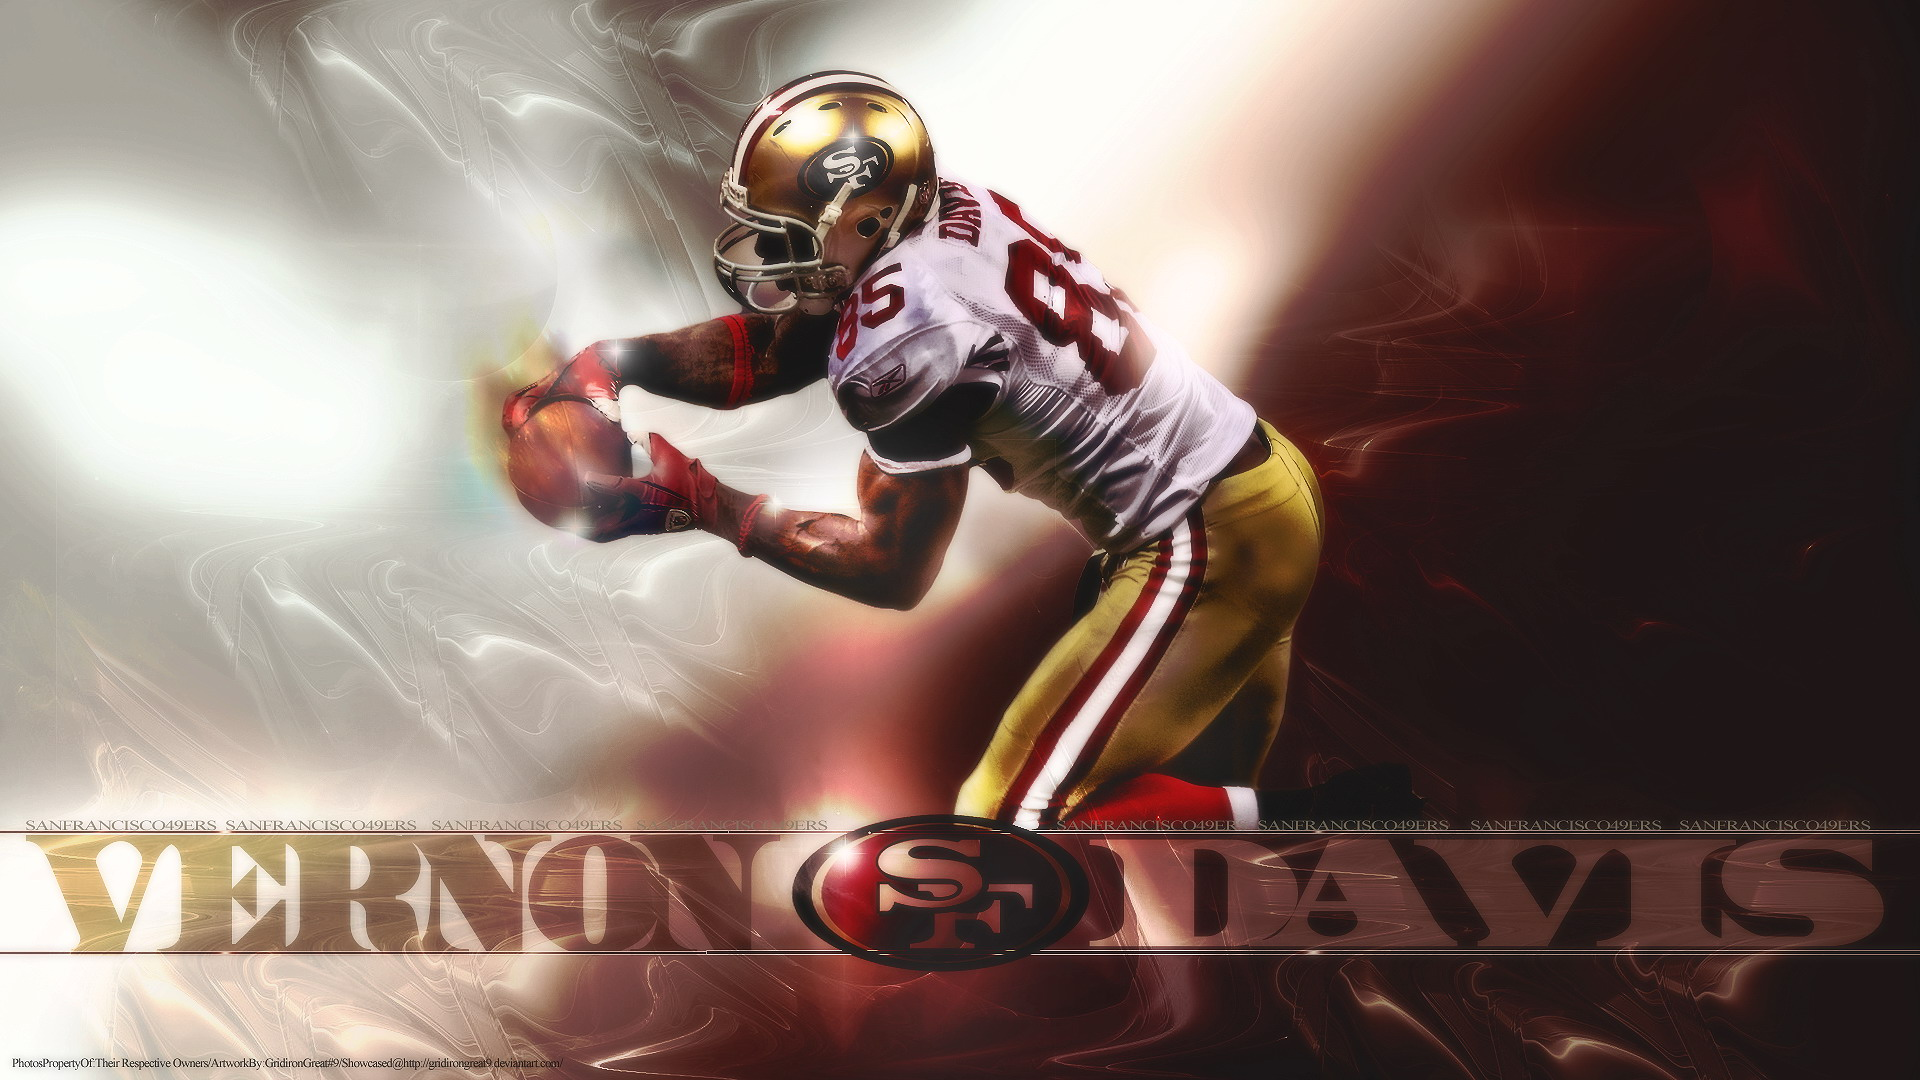 Vernon Davis Full HD High Quality Wallpapers Free